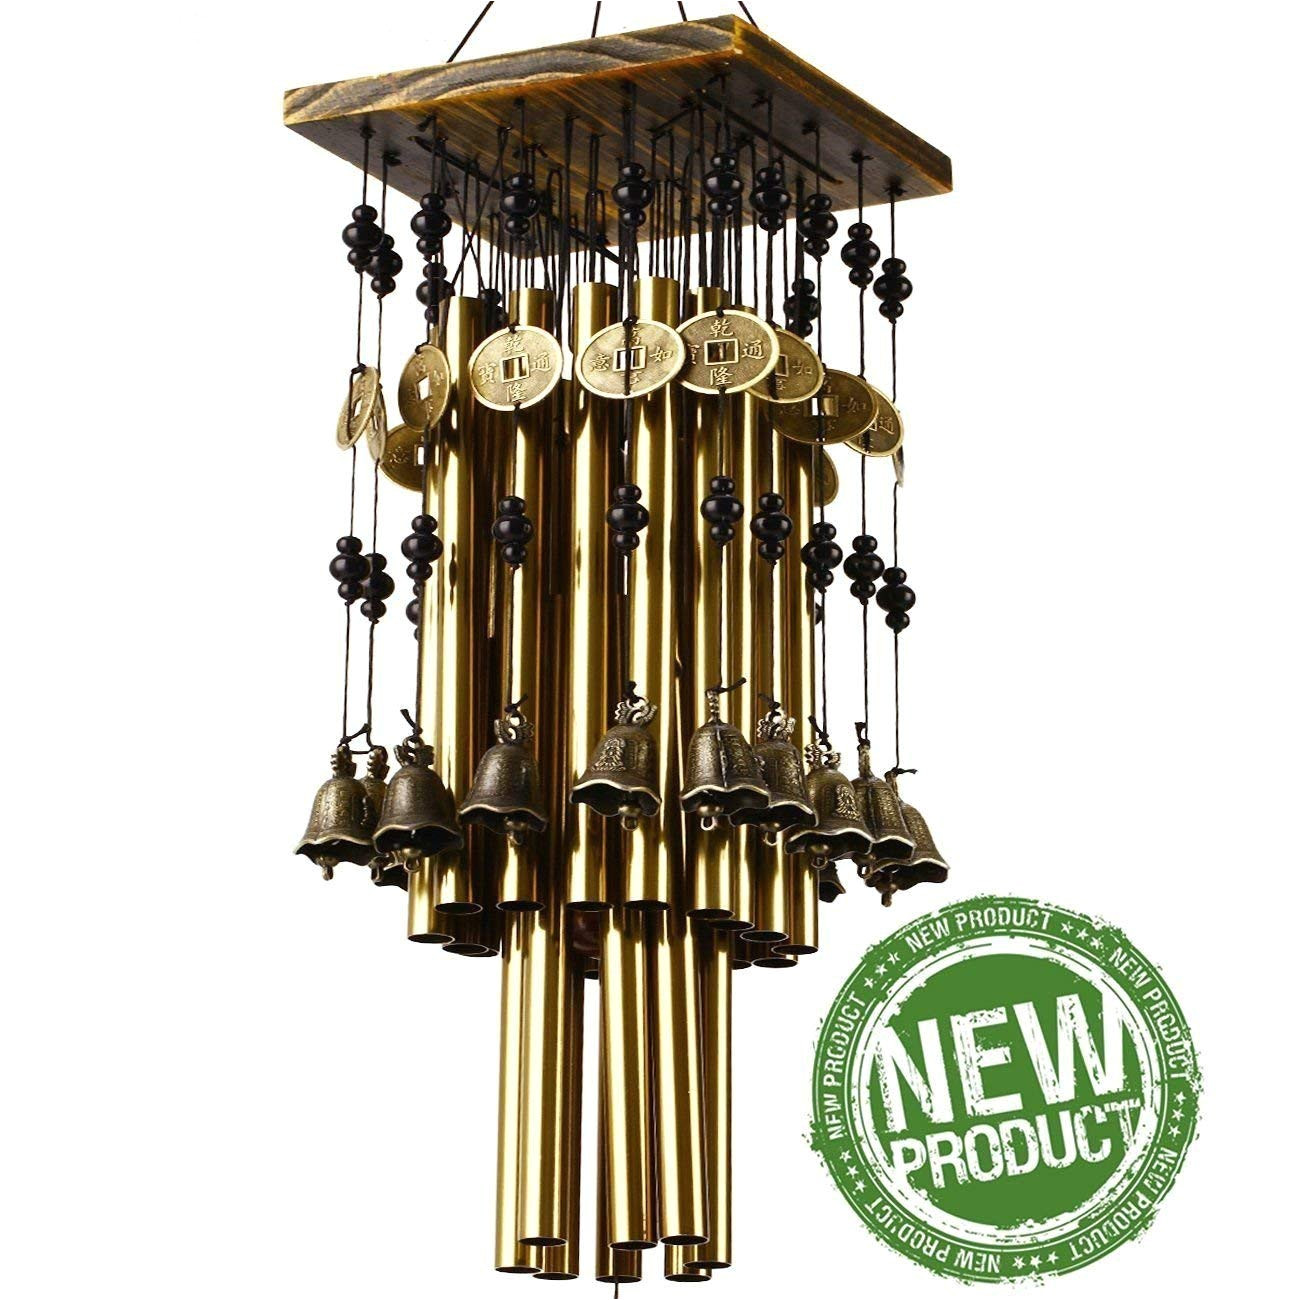 ylyycc brassiness wind chime 24 tube metal windbell money drawing wind chime amazon in garden outdoors